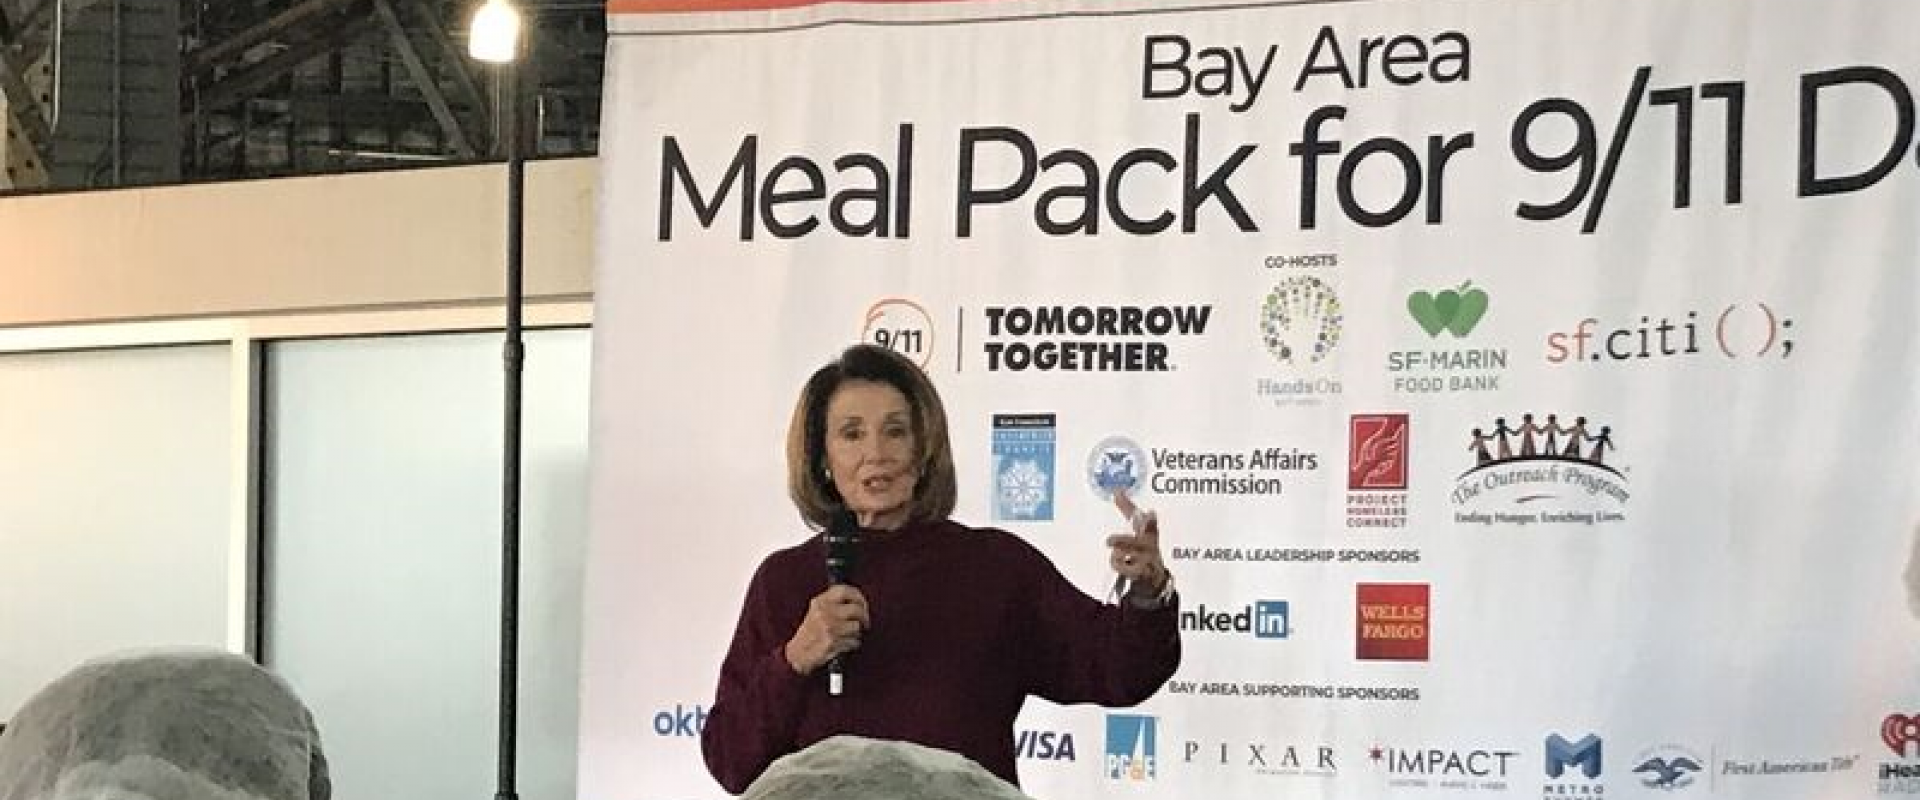 Congresswoman Pelosi joins 1,000 volunteers from around the Bay Area packing 300,000 meals for those in need as part of the 9/11 National Day of Service and Remembrance, transforming a day of tragedy into a day of public service.